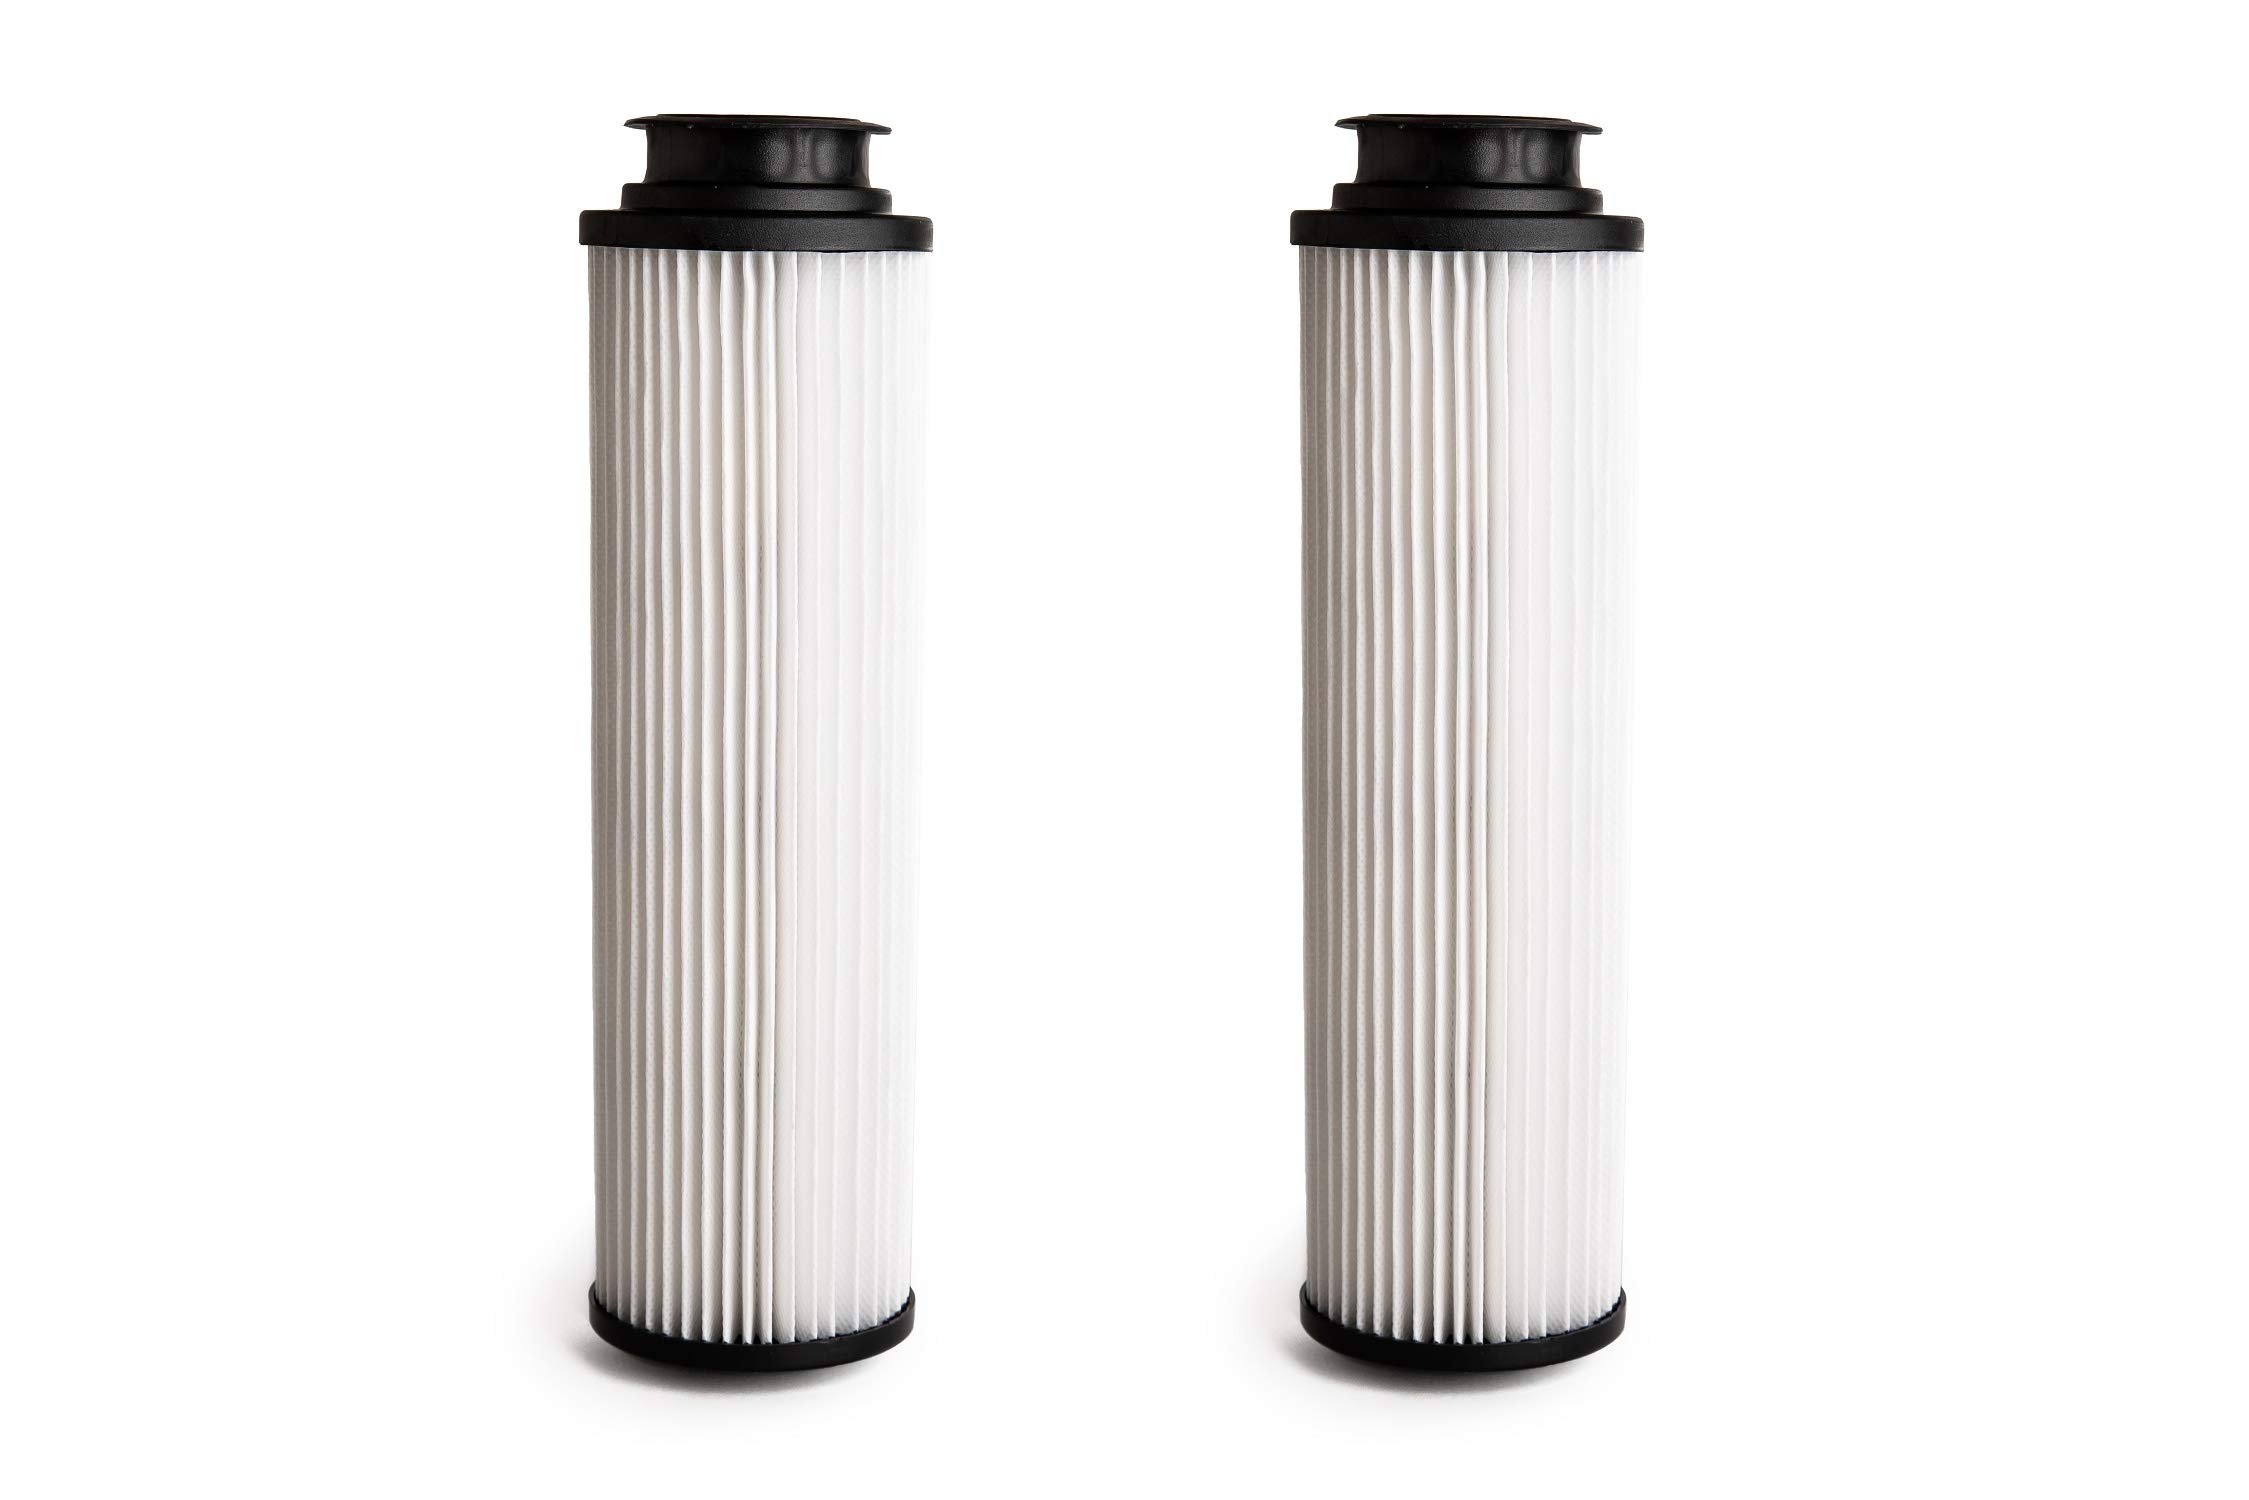 Green Label 2 Pack Replacement HEPA Filter Type 201 for Hoover Windtunnel, Savvy and Empower Vacuum Cleaners (Compares to 43611042, 42611049, 40140201). Washable and Reusable